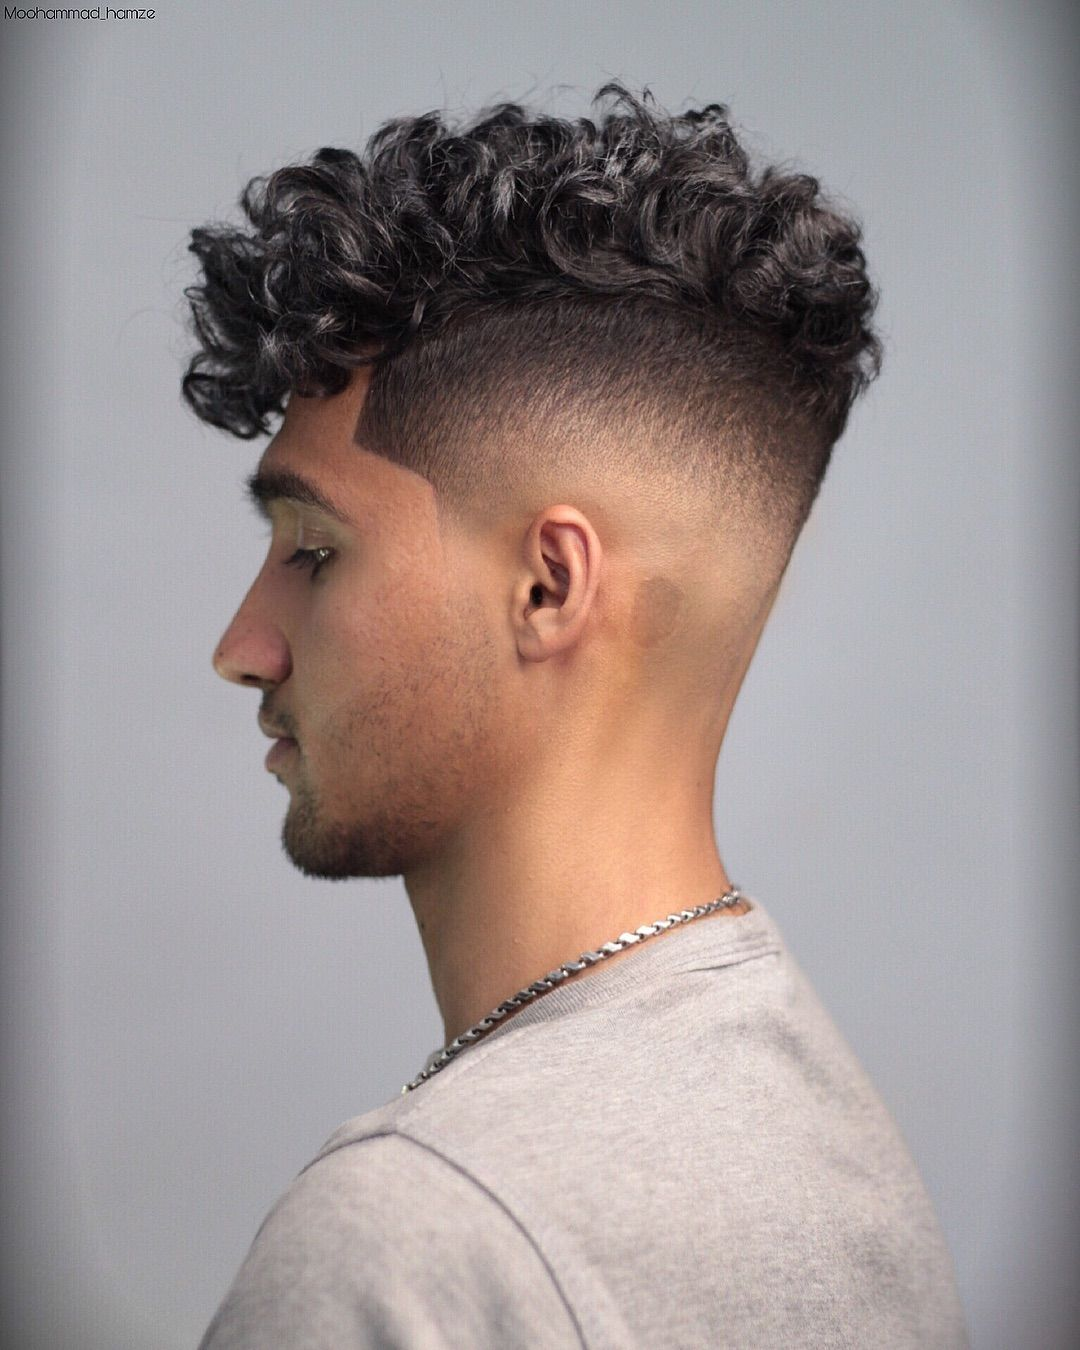 45 Hottest Men S Curly Hairstyles That Attract Women Men S Curly Hairstyles Long Hair Styles Fade Haircut